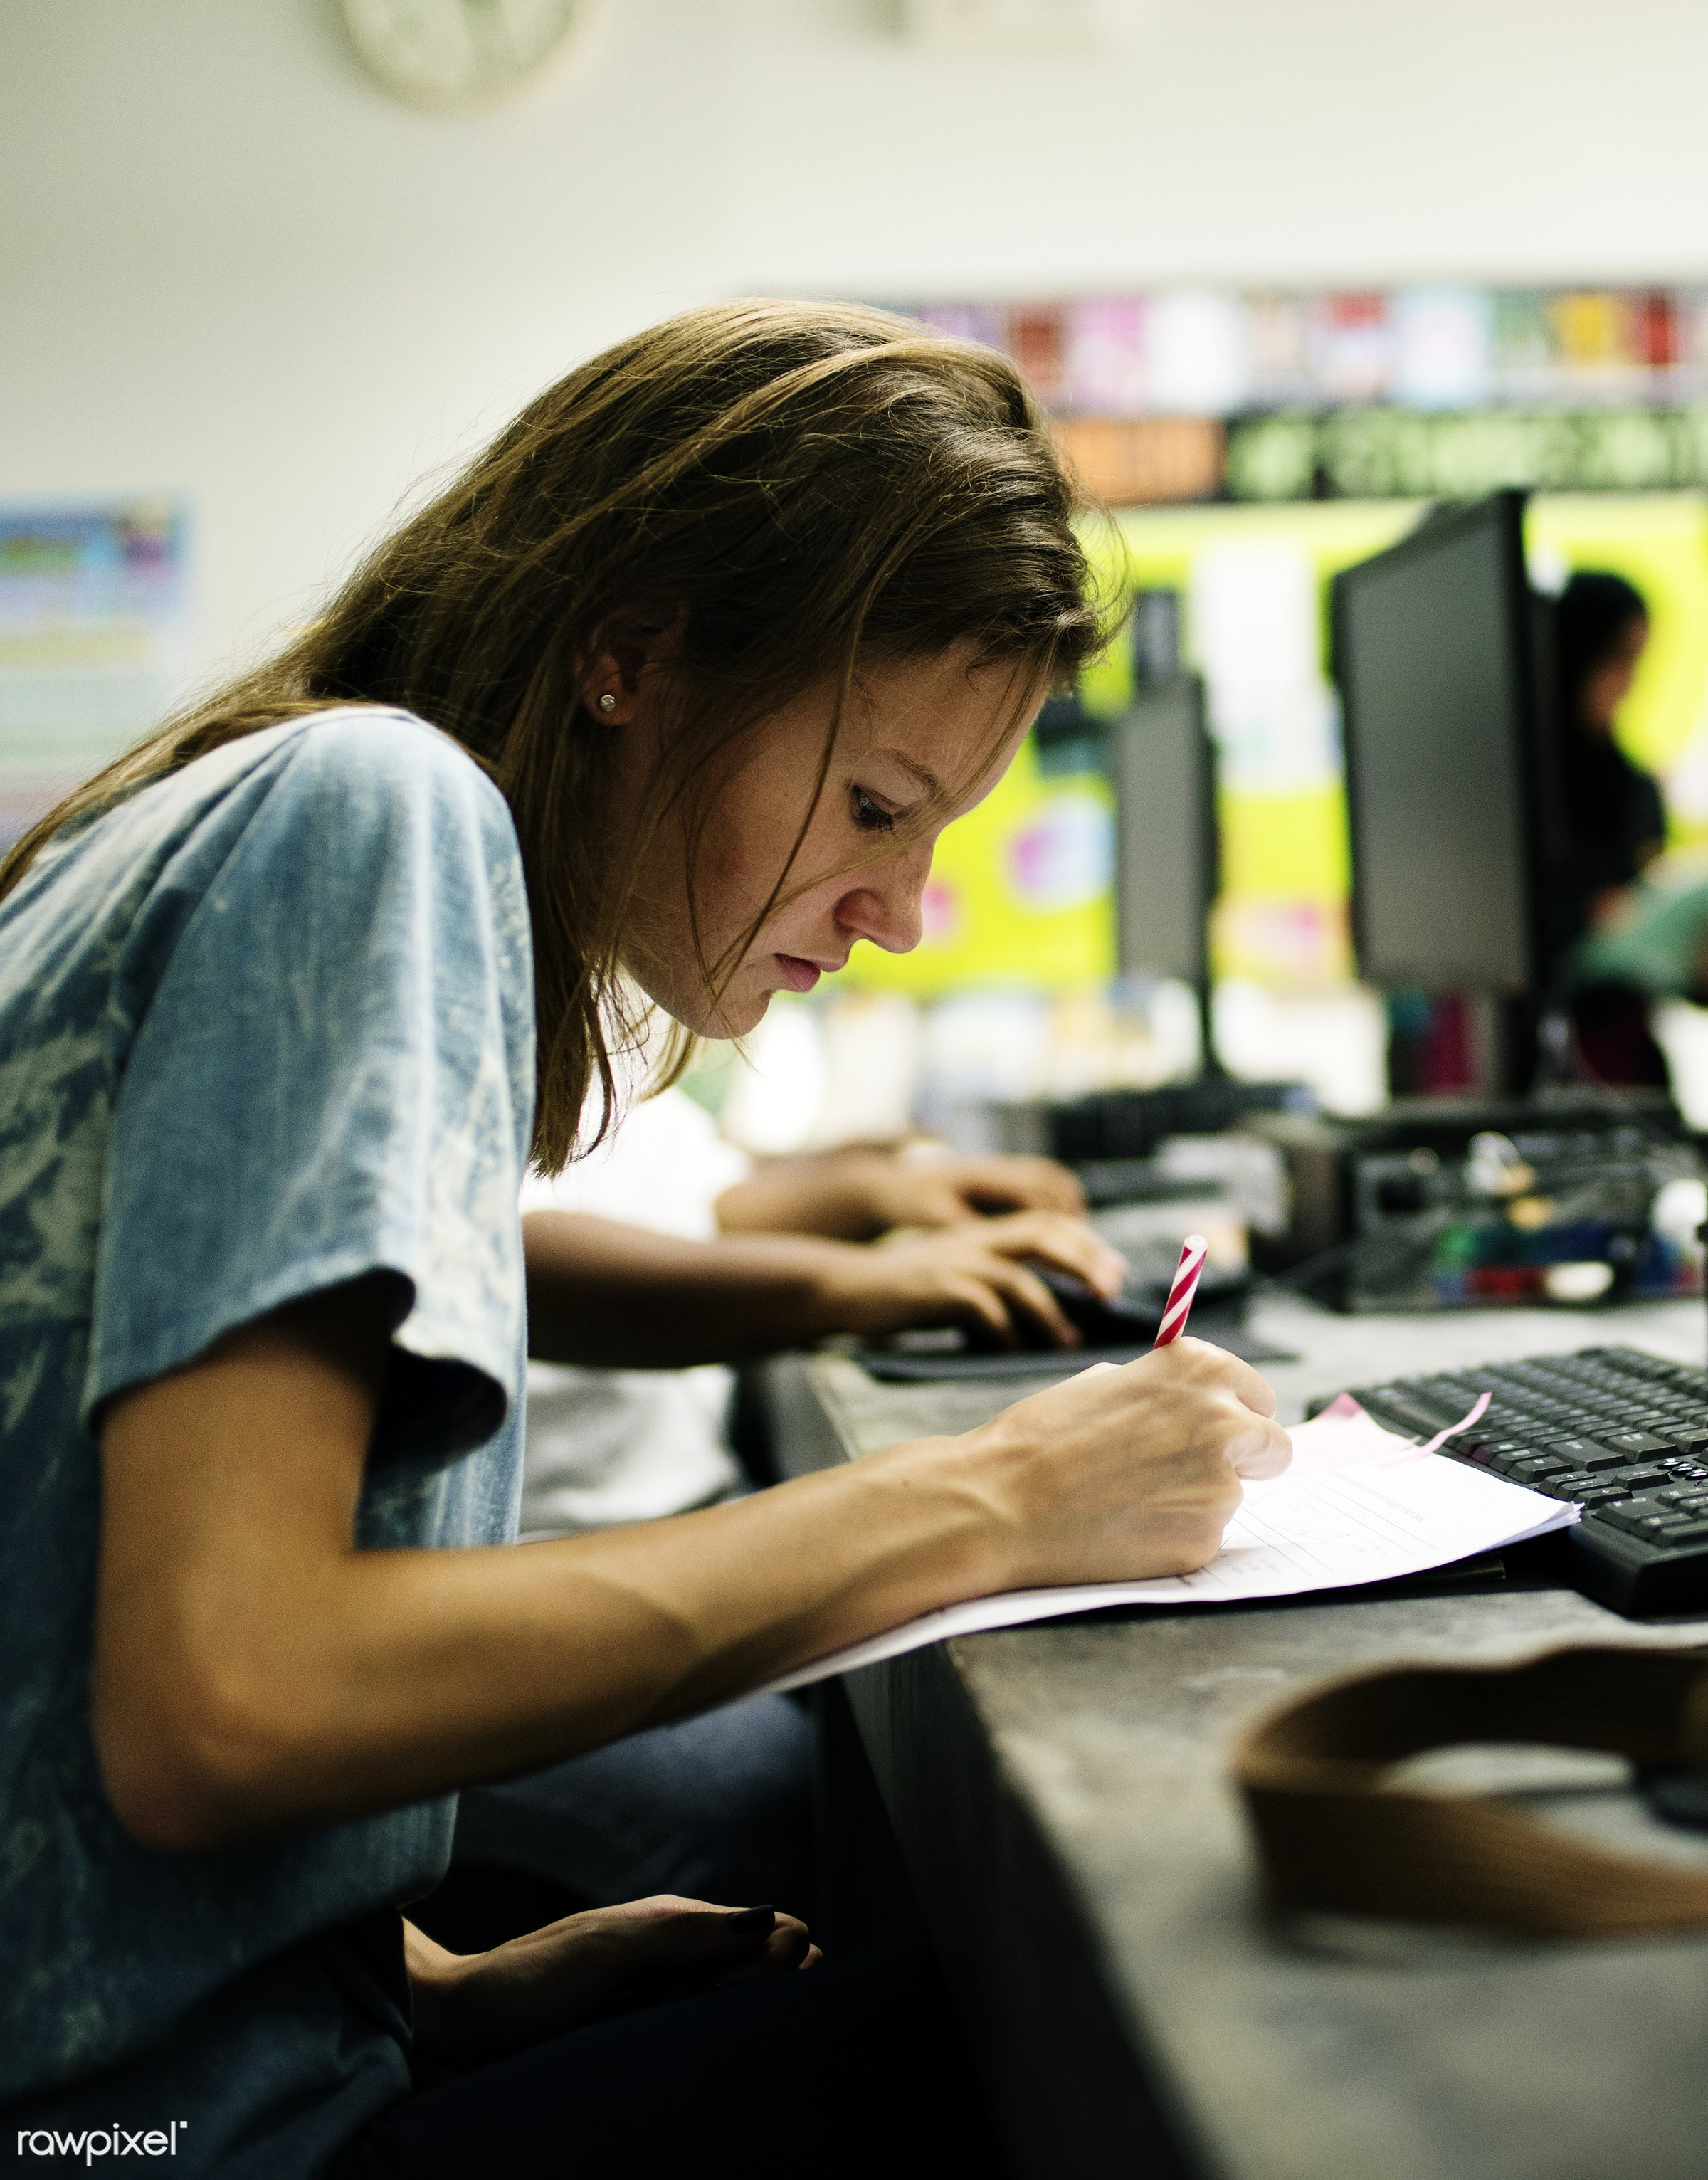 computer, using, technology, writing, caucasian, girl, student, woman, casual, screen, connection, keyboard, learning, young...